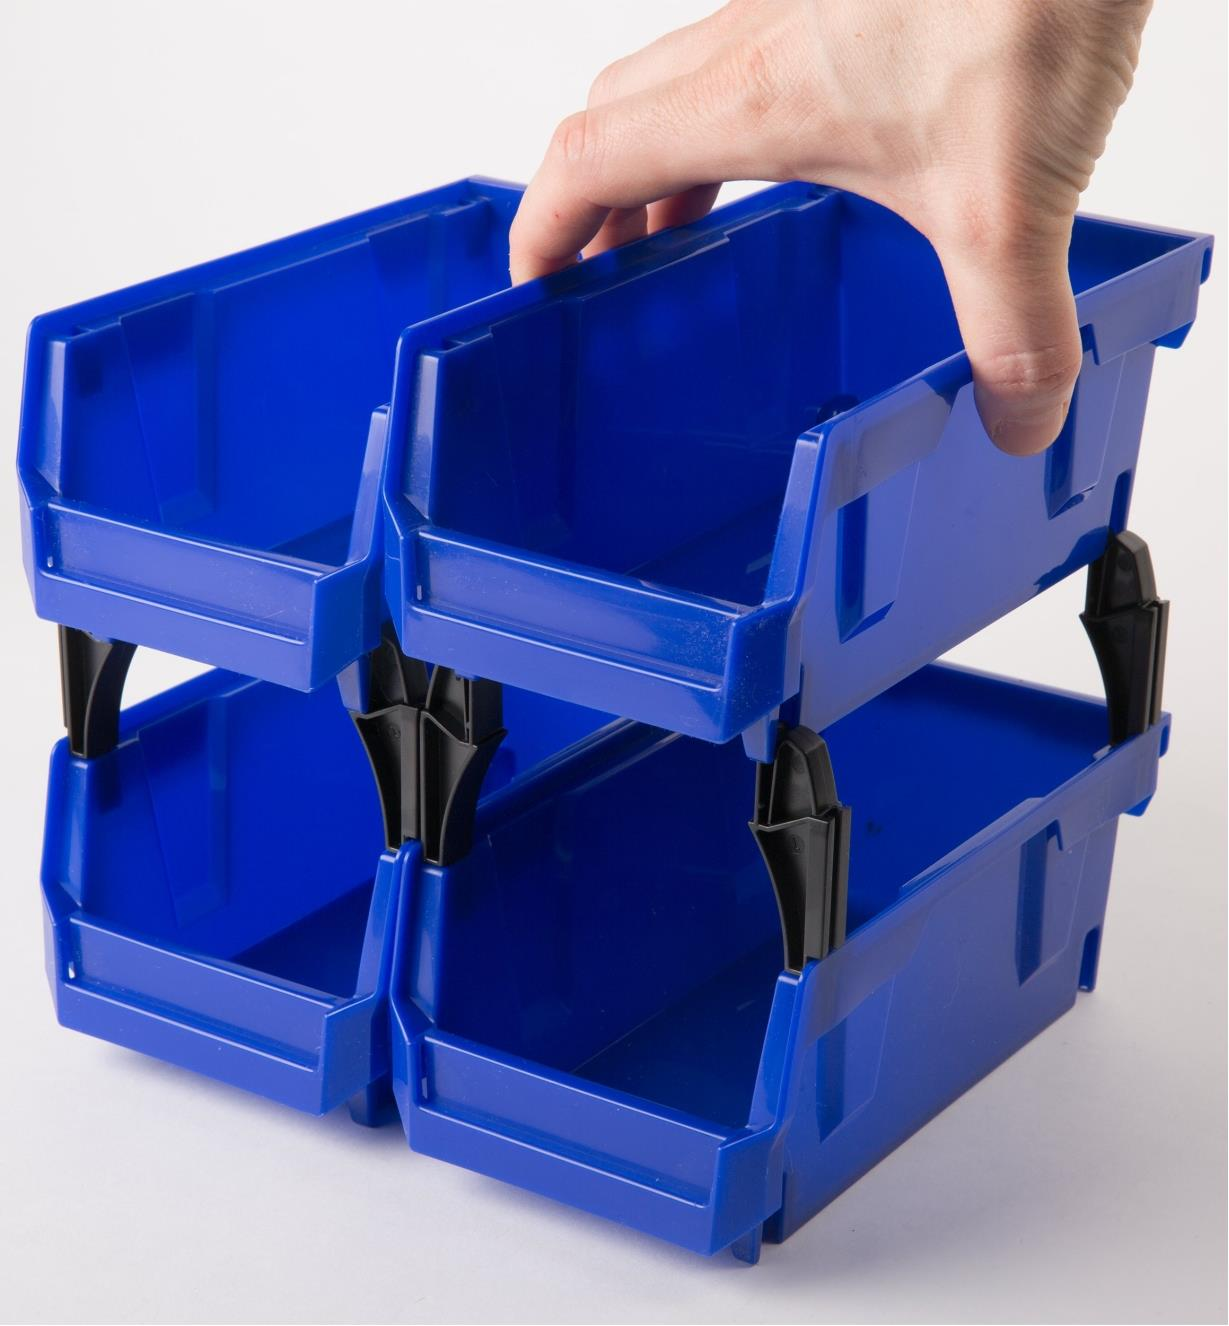 Industrial-Grade Stackable Storage Bins